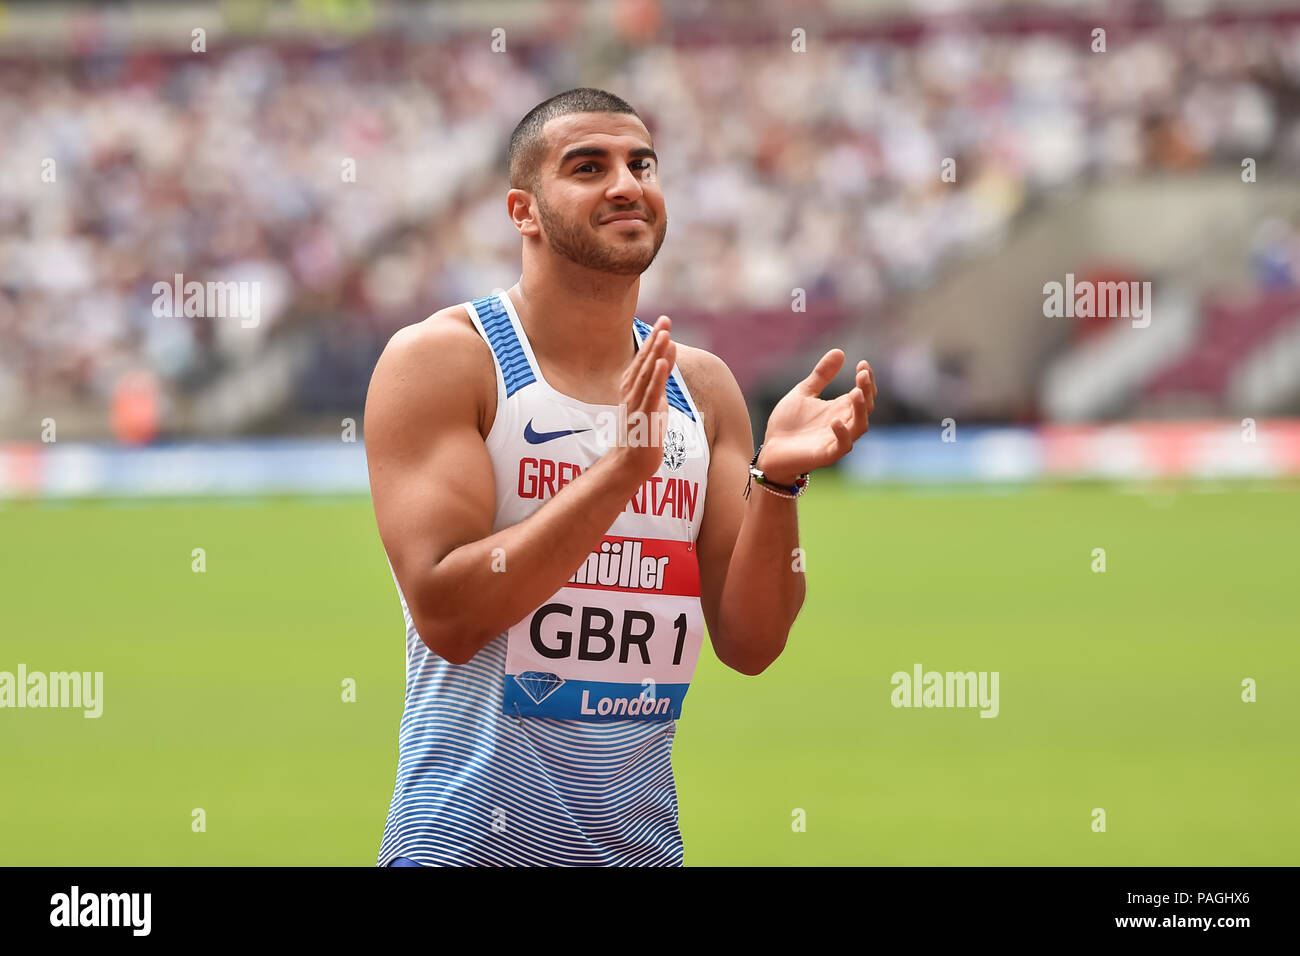 London, UK. 22nd July 2018. Adam Gemili (GBR) greats the crowd prior to Men's 4x100m during 2018 IAAF Diamond League - Muller Anniversary Games at London Stadium on Sunday, 22 July 2018. LONDON, ENGLAND. Credit: Taka G Wu Credit: Taka Wu/Alamy Live News - Stock Image